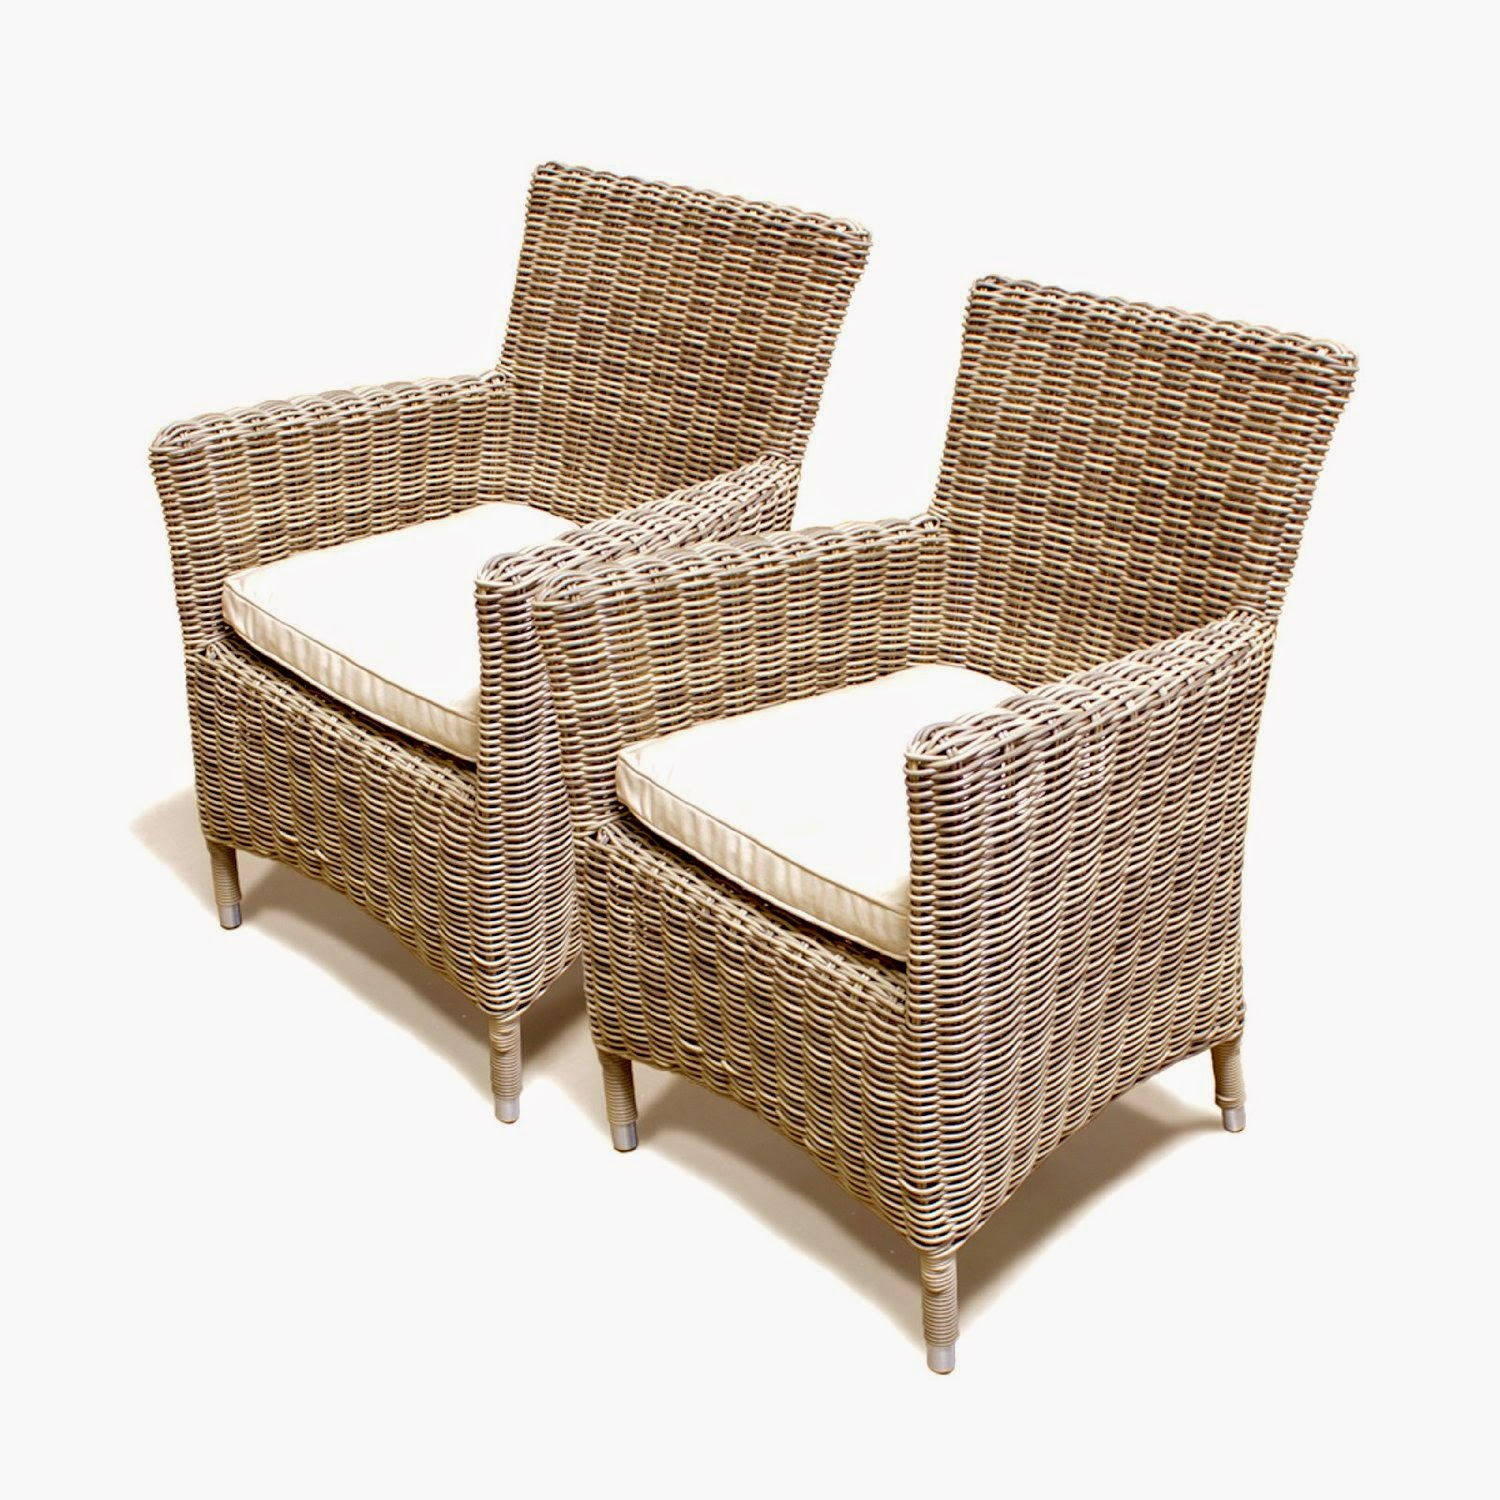 co sectional set rattan furniture tk smsender reviews patio outdoor sale tulum classics cushions amazon with piece